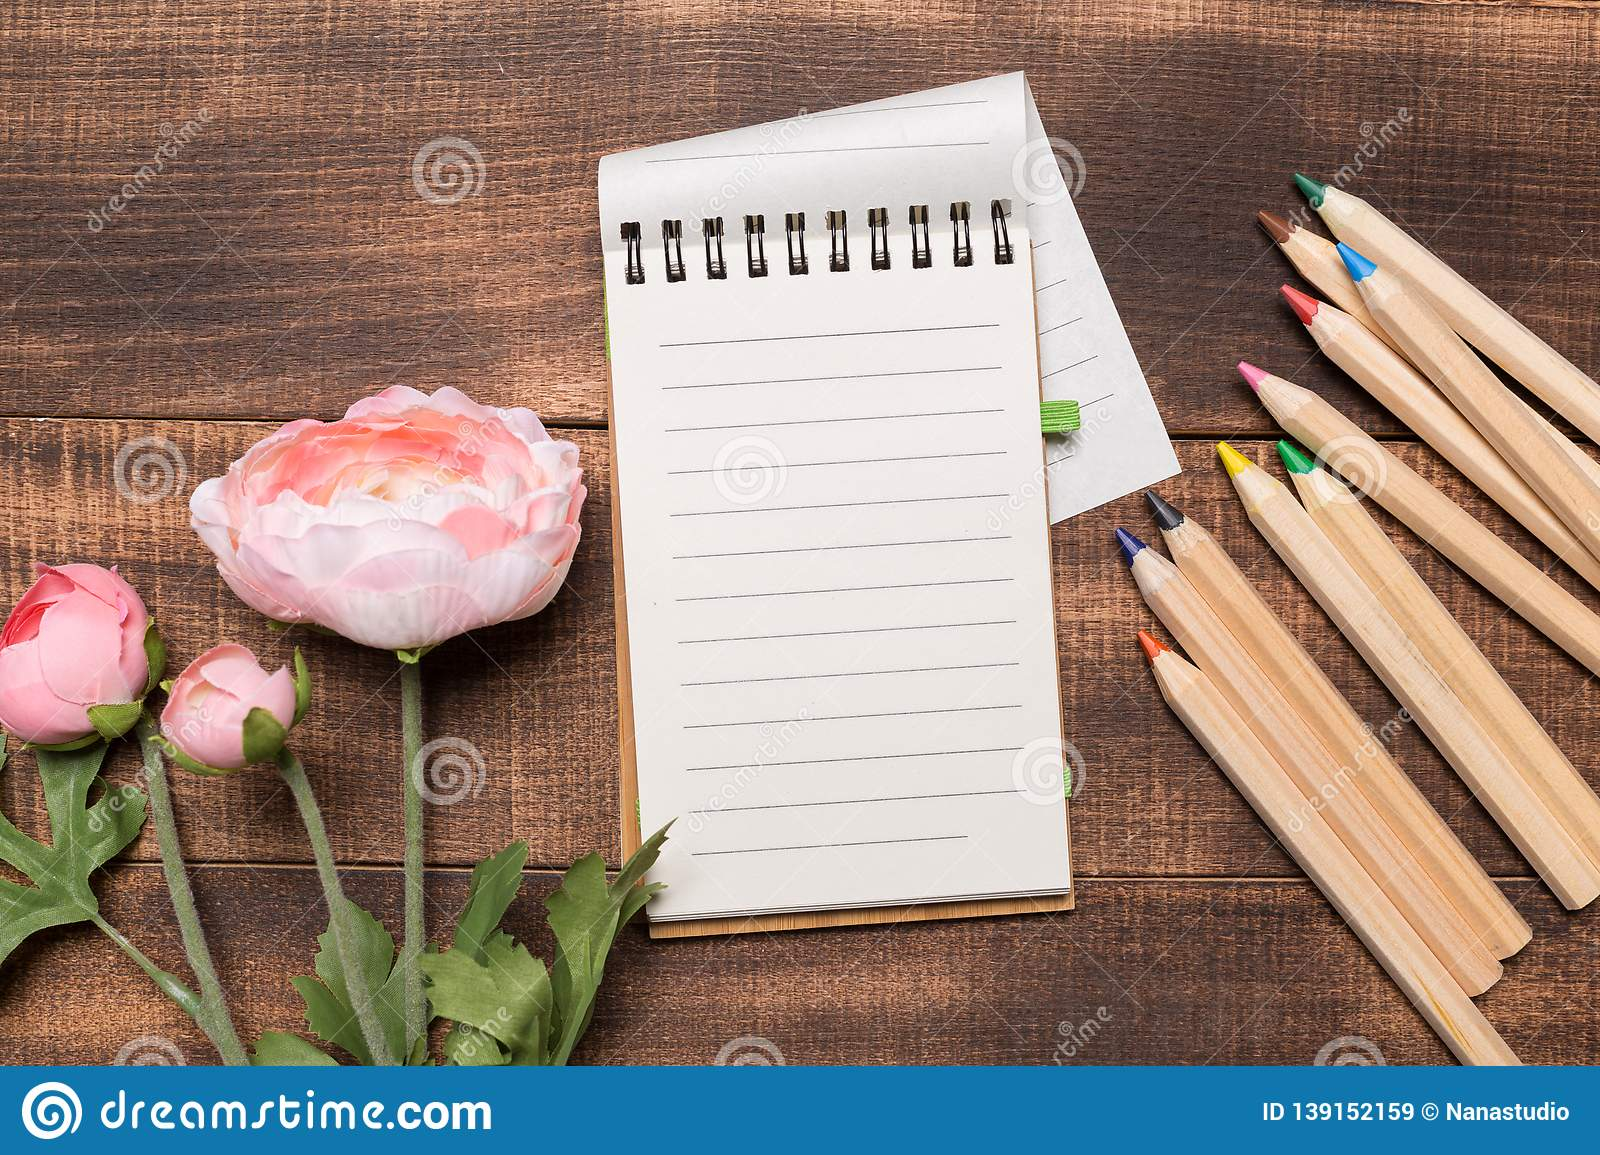 Still life, business, office supplies or education concept : Top view image of open notebook with blank pages on wood